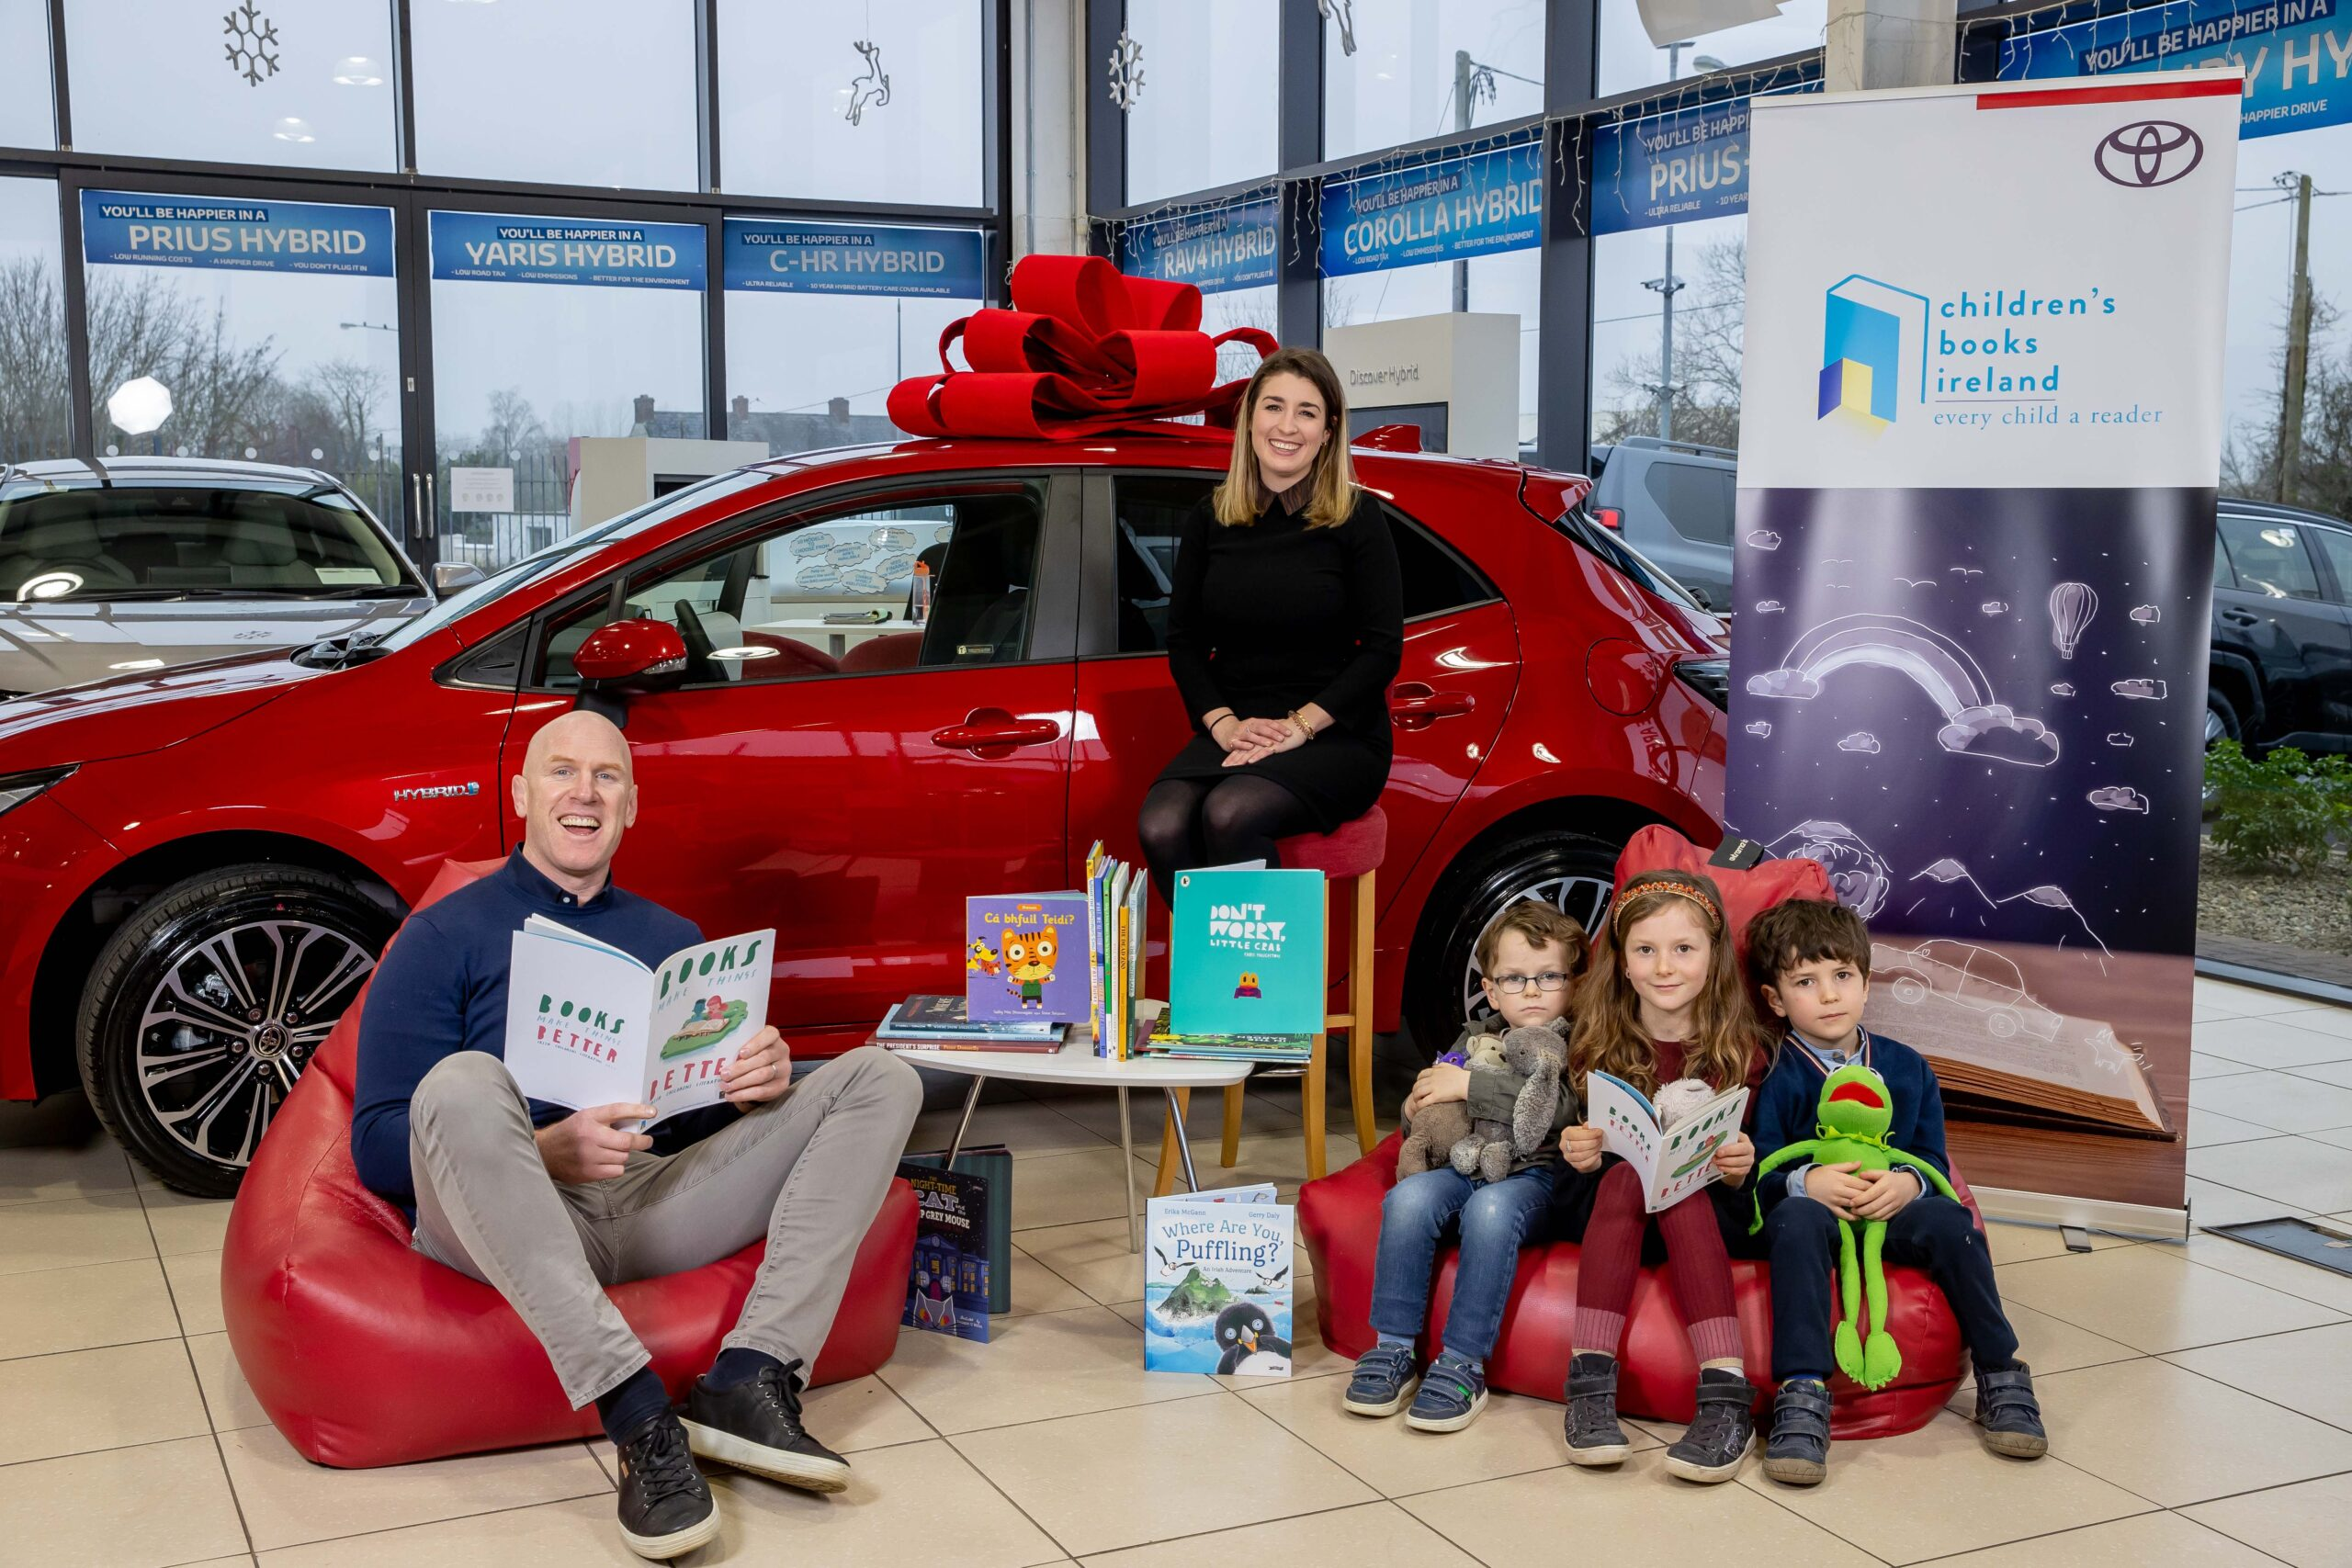 Toyota Ireland supports Children's Books Ireland to gift 2,000 books to vulnerable children this Christmas